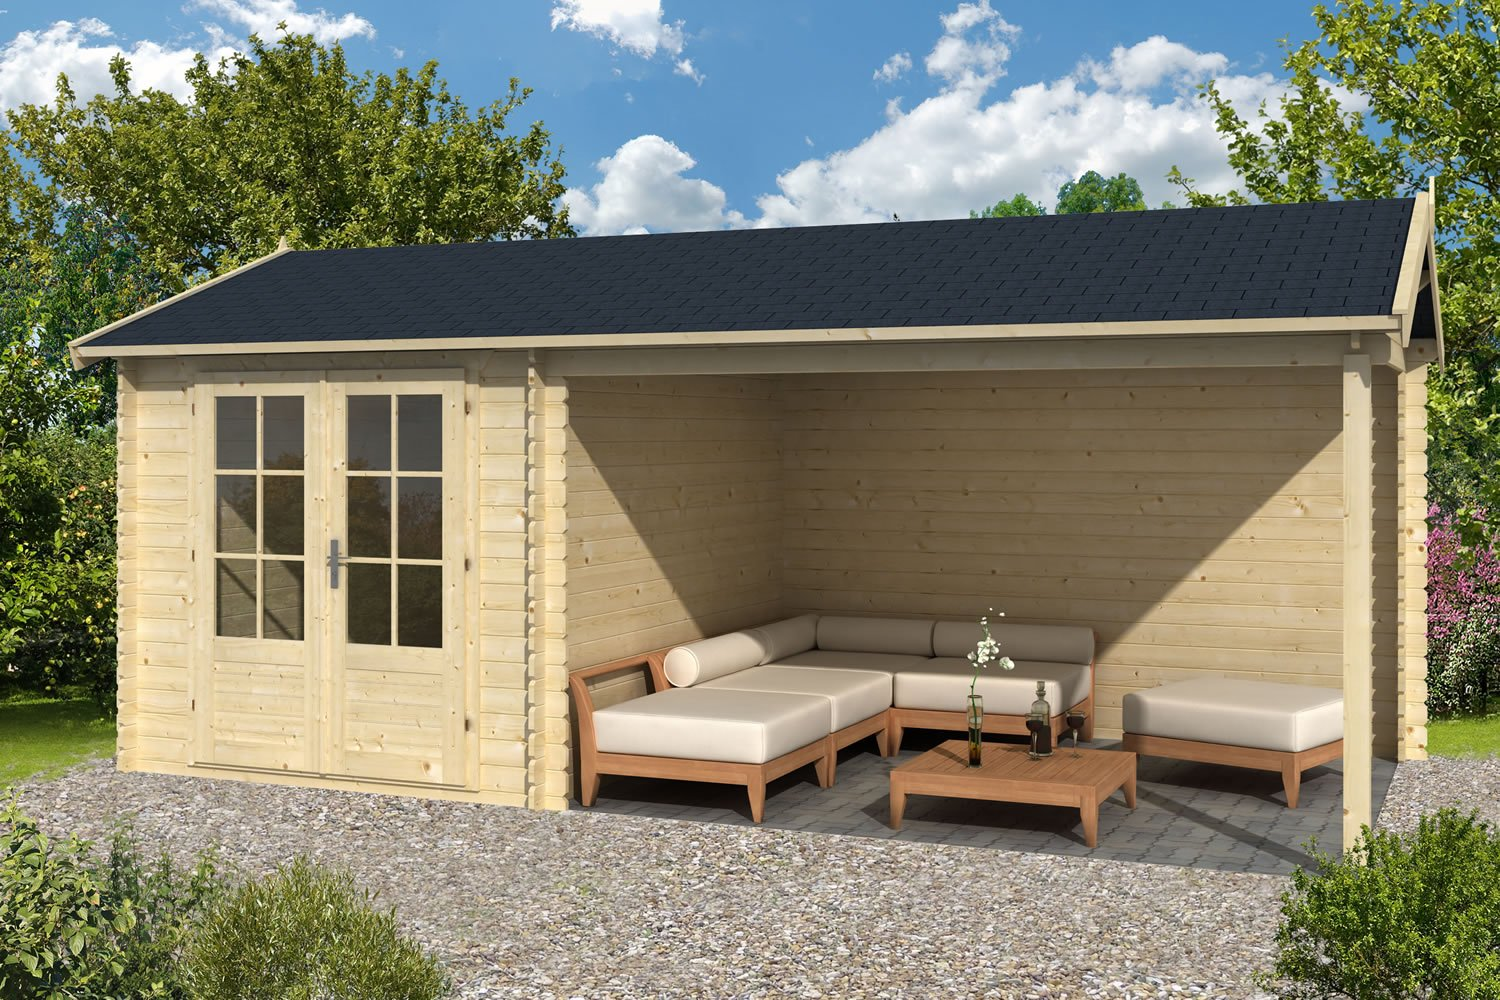 Ove Log Cabin With Side Porch 2.5x3.4m+3.0m